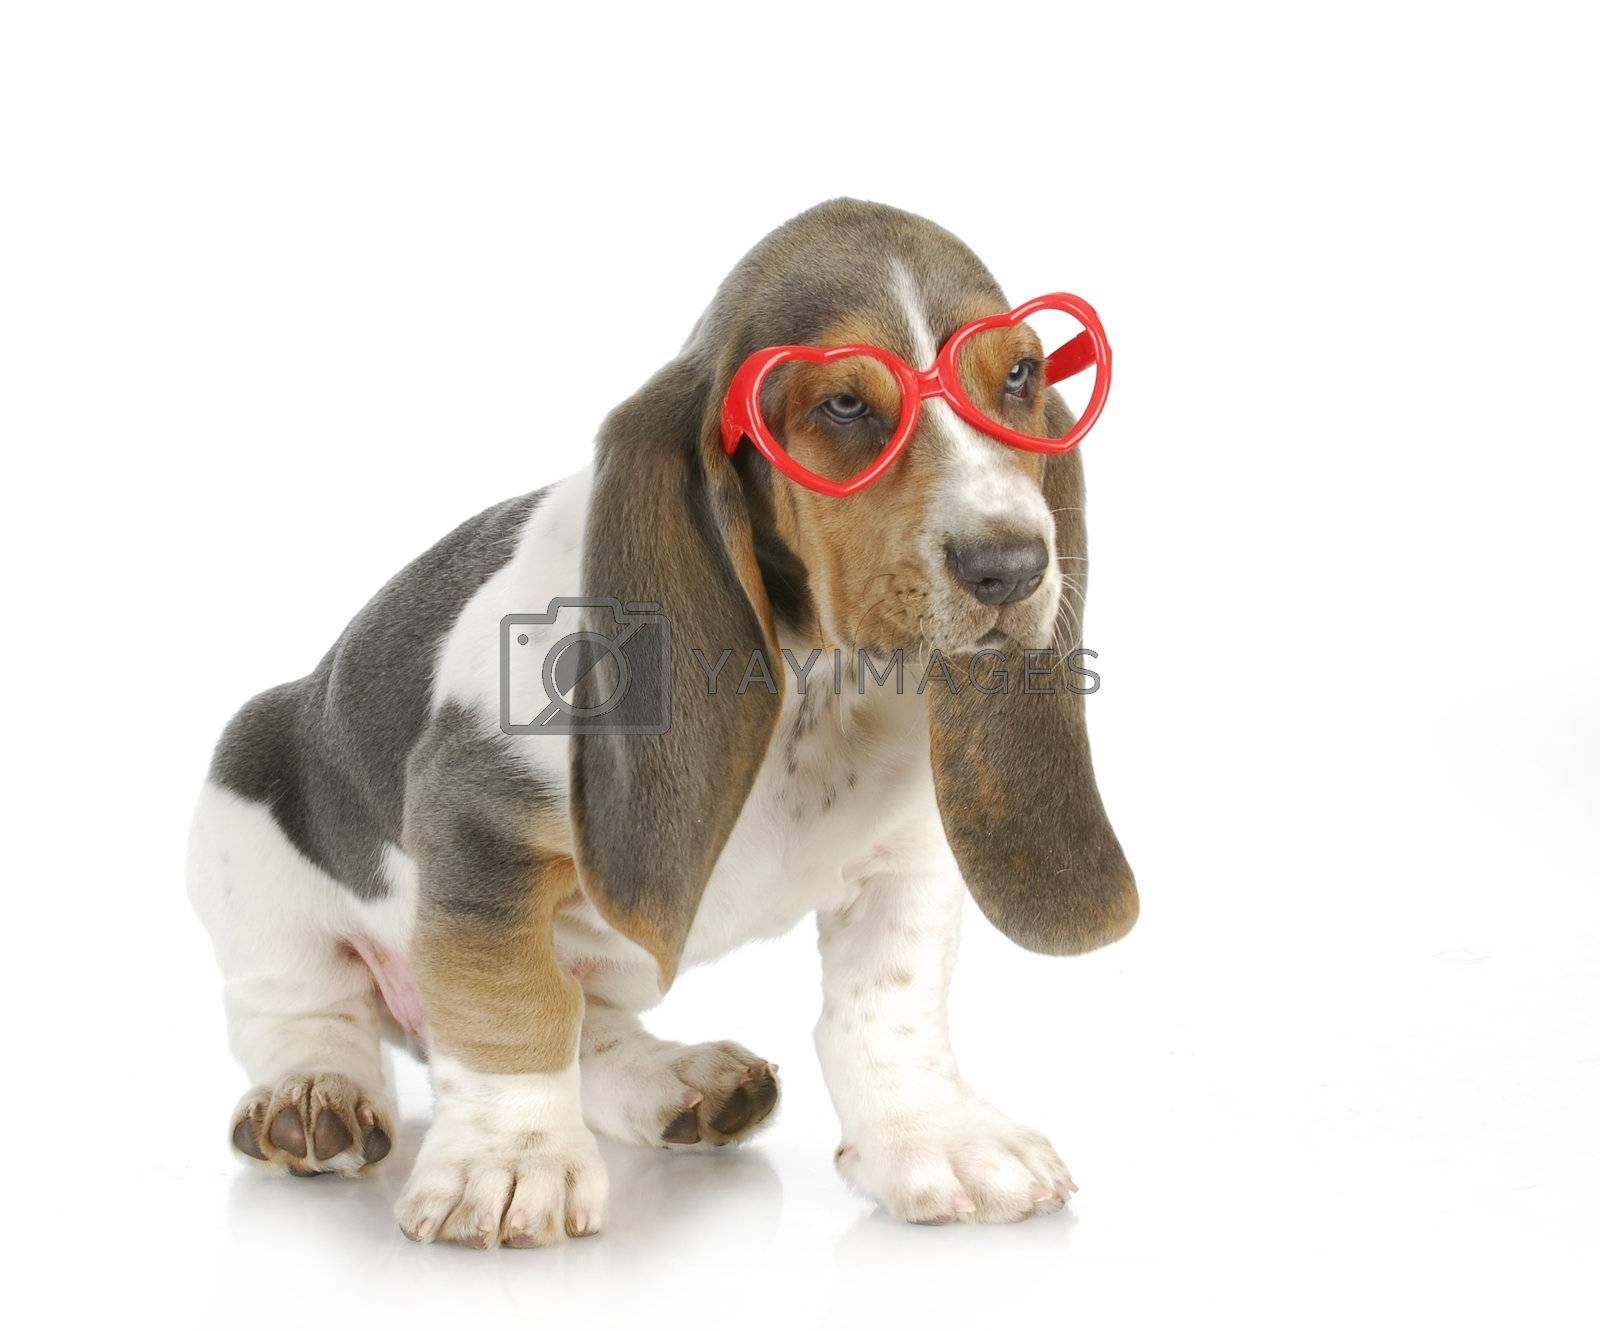 puppy love - basset hound puppy wearing heart shaped glasses with reflection on white background